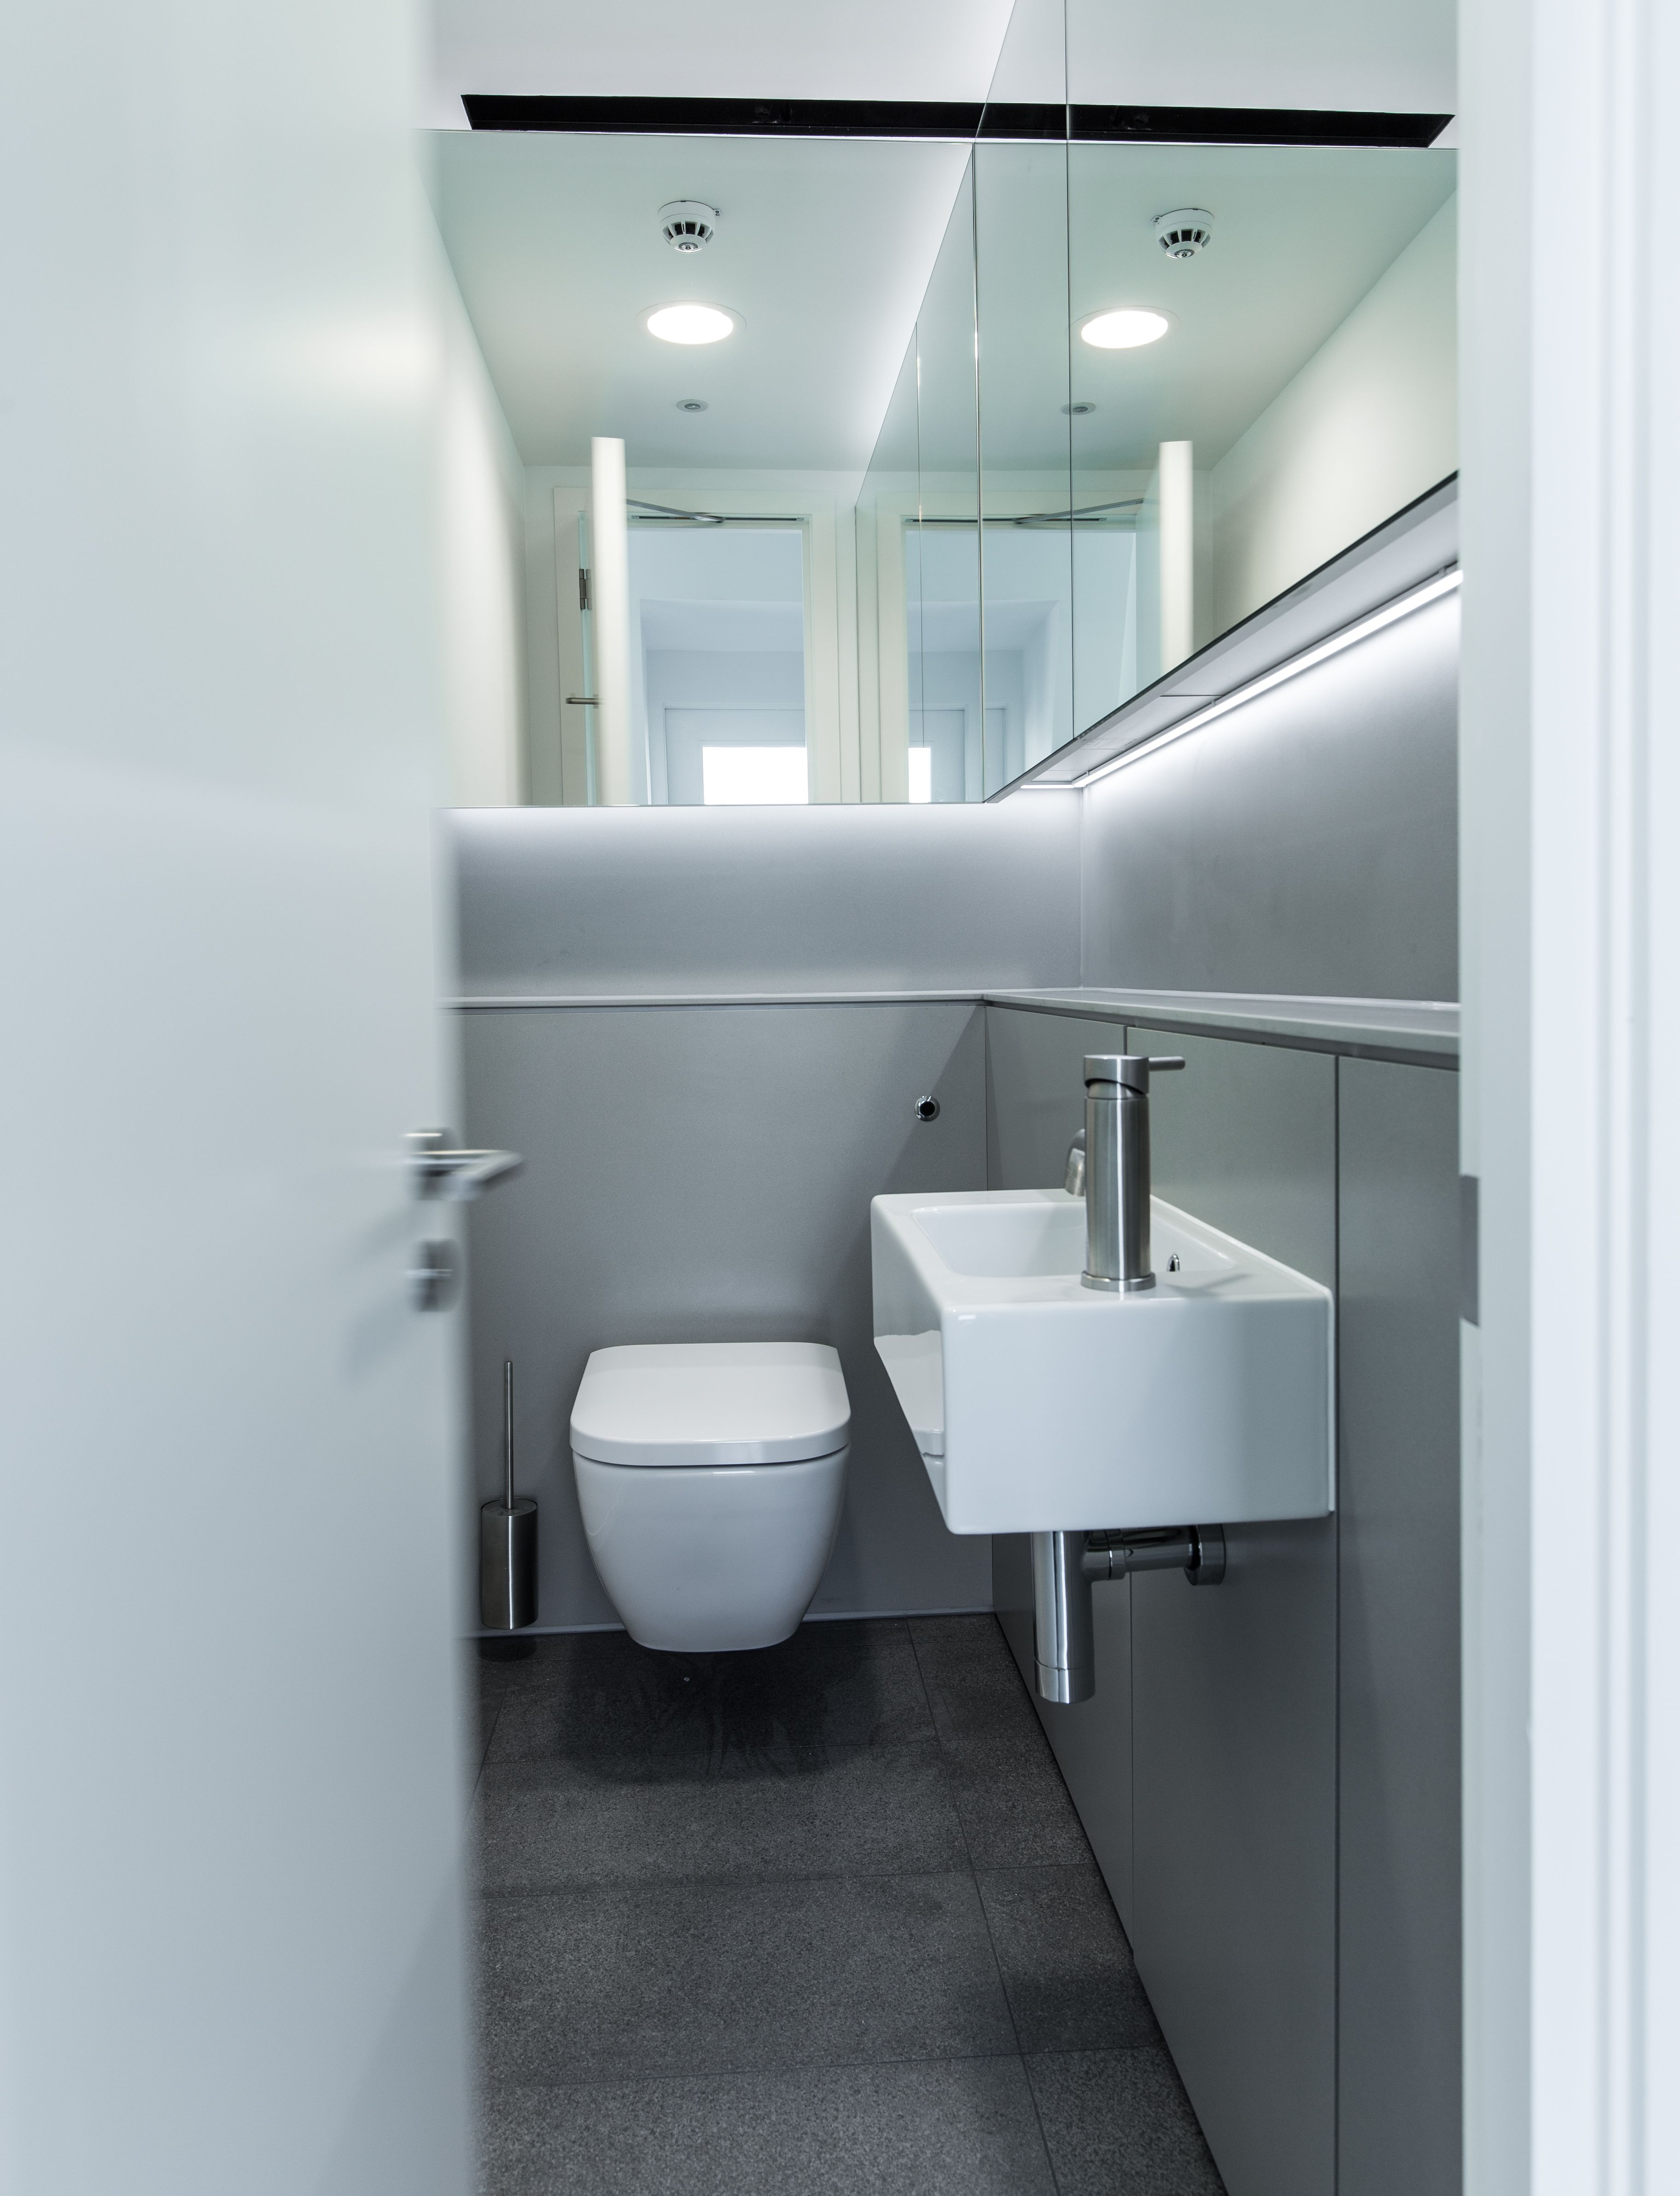 Super Loos with Concerto integrated duct panels faced with solid